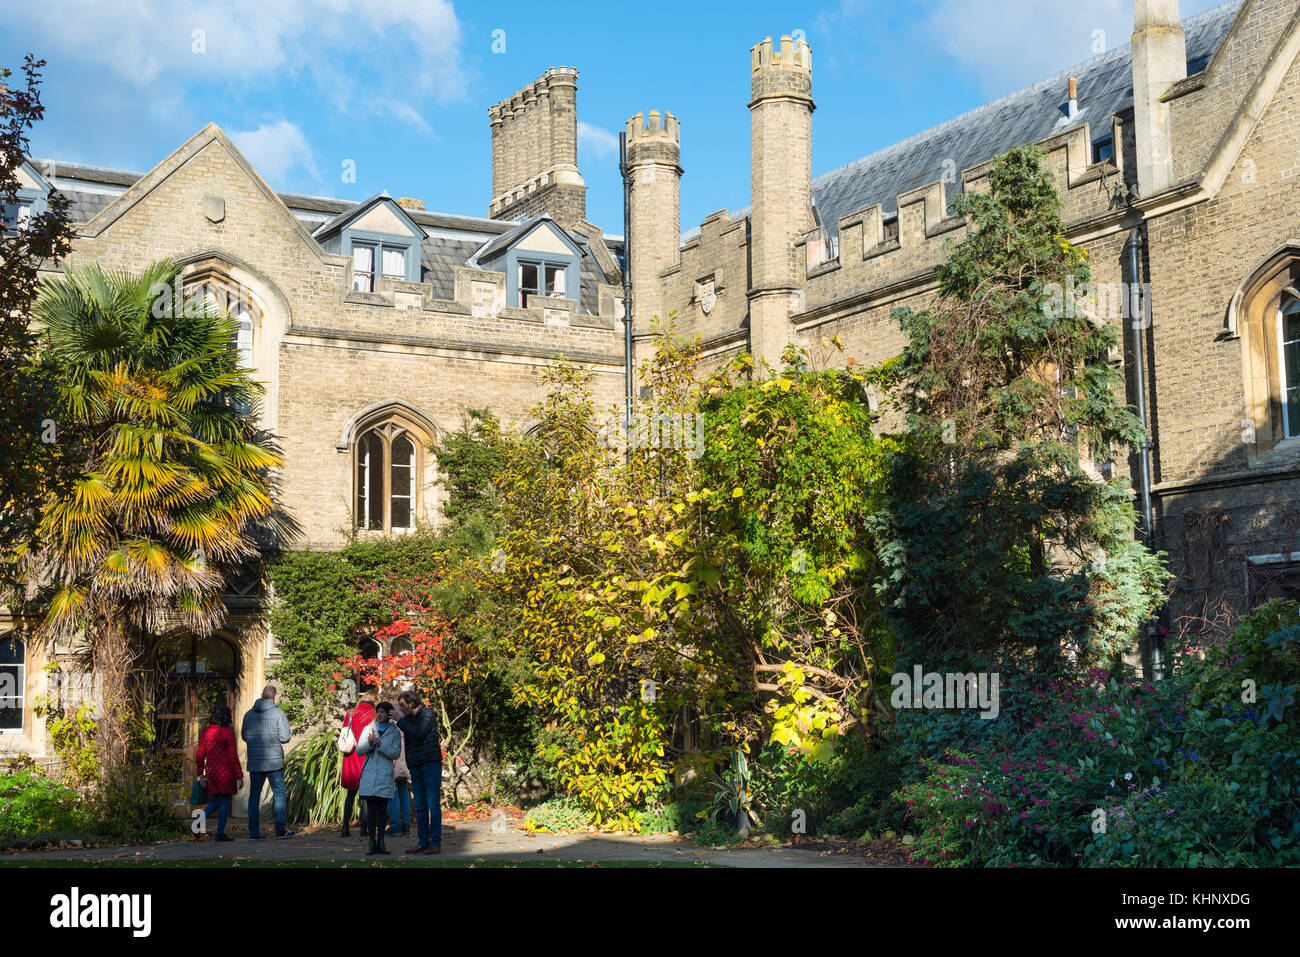 Gisborne Court at Peterhouse College, the oldest college of Cambridge University. Cambridgeshire, England, UK. - Stock Image